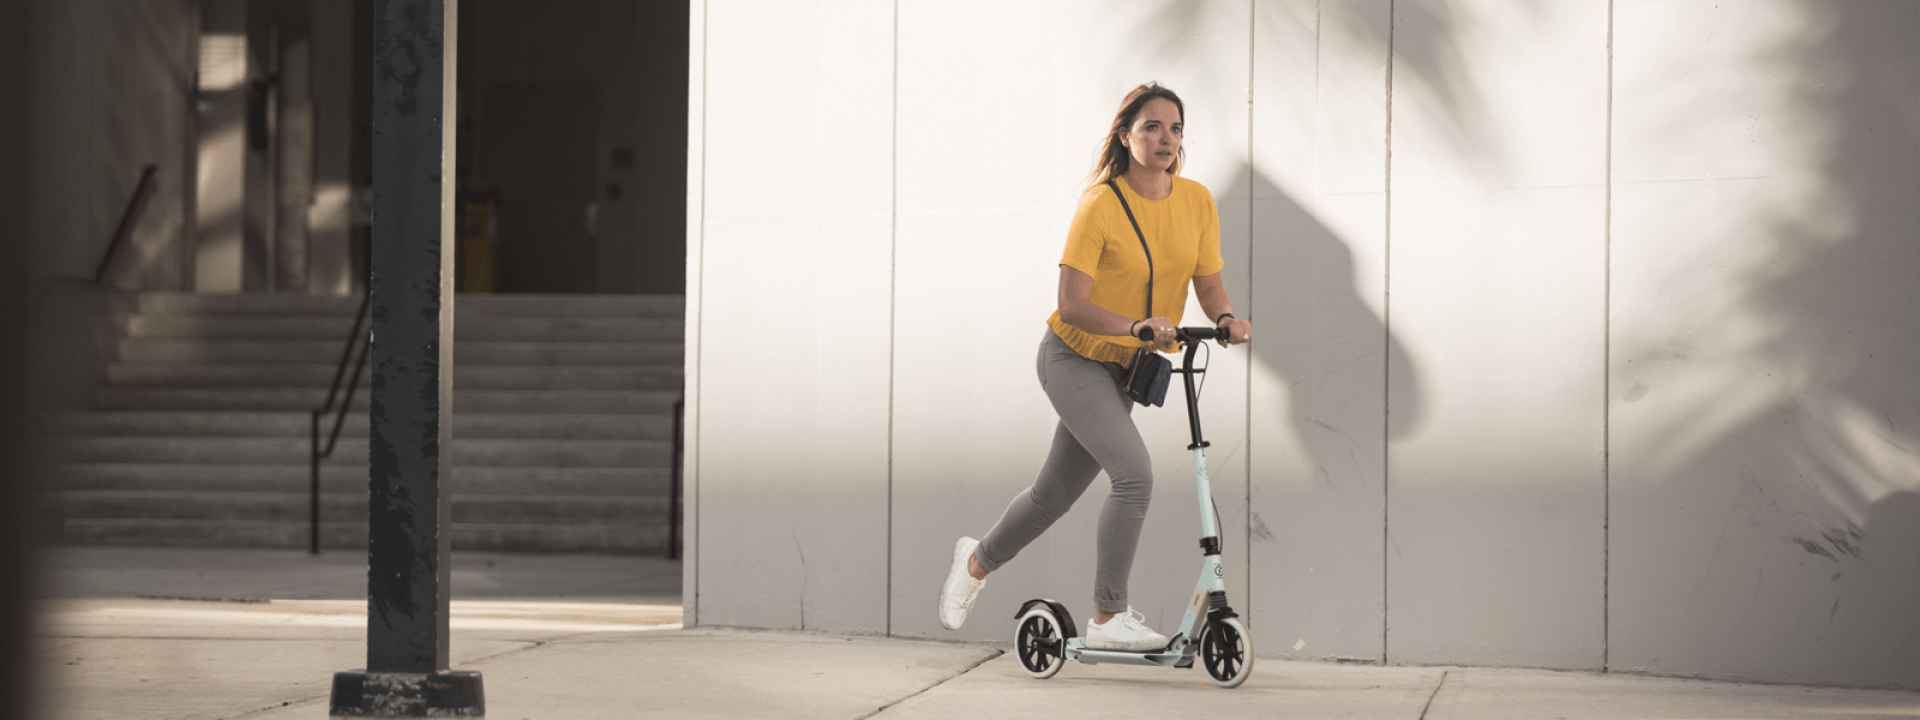 Scootering: A Source Of Well-being?